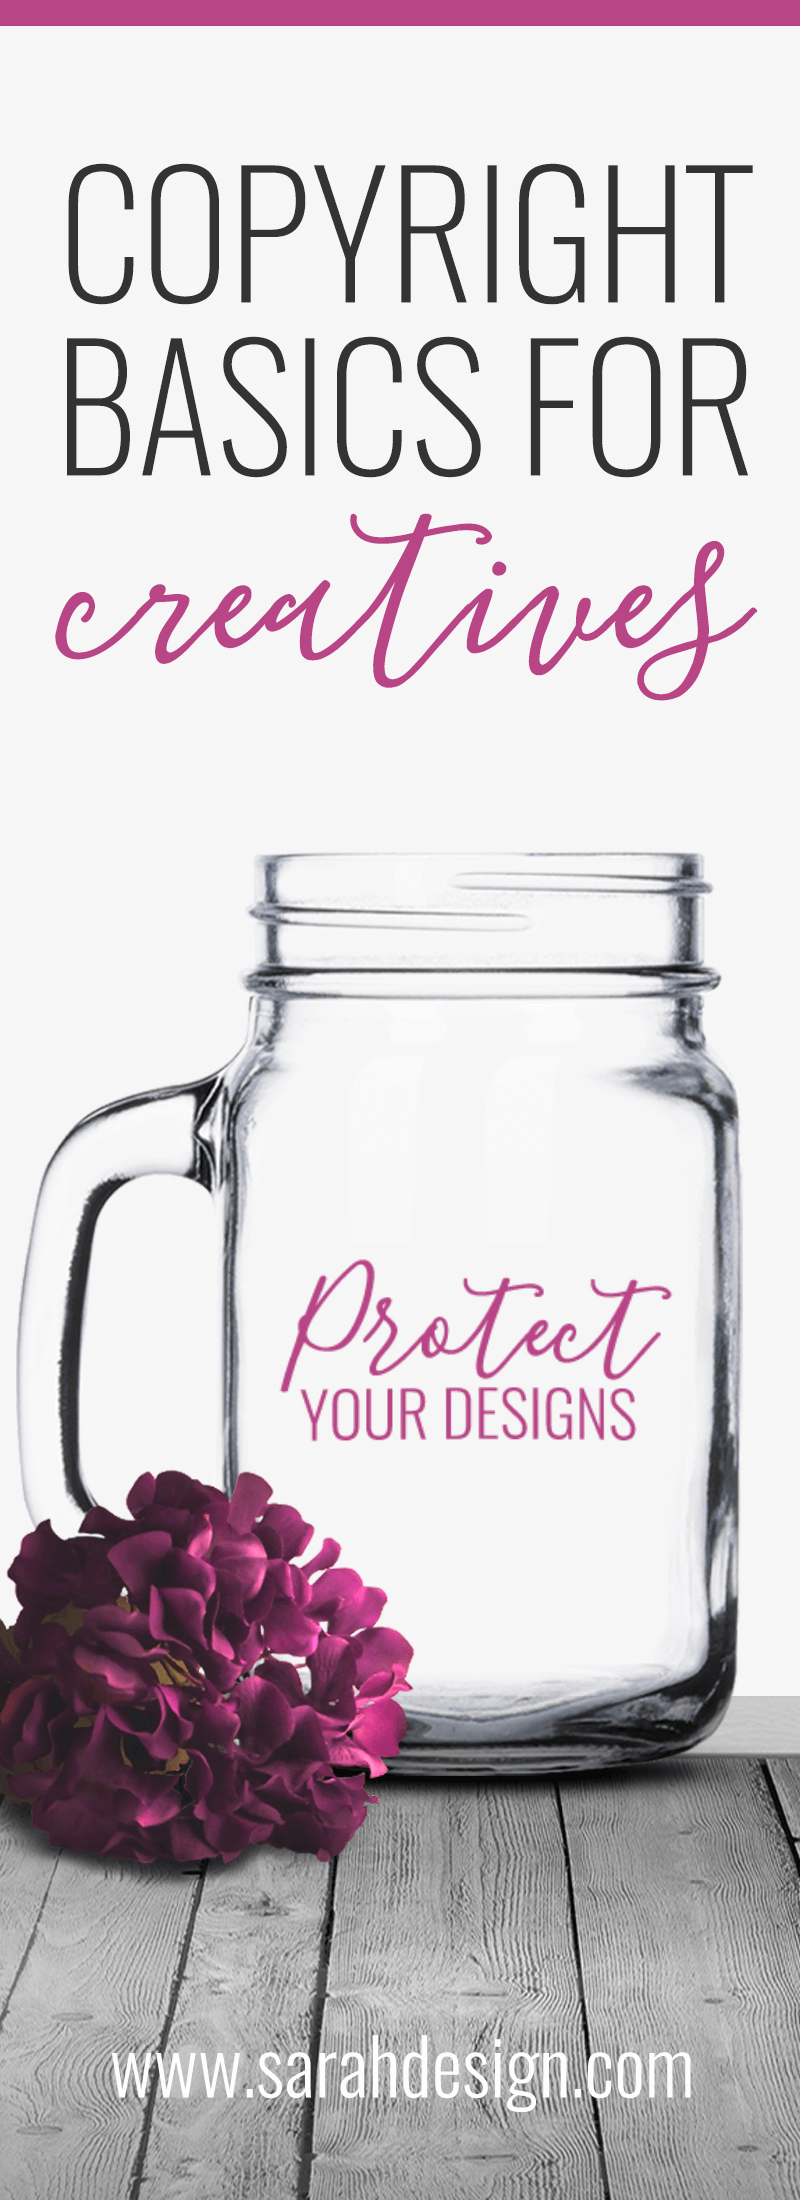 If you sell custom vinyl decal or etching designs in your shop and someone is stealing your designs, you need to know what to do! Learn copyright basics for creatives in this post on www.sarahdesign.com: 3 Essential Things to Know About Copyrights